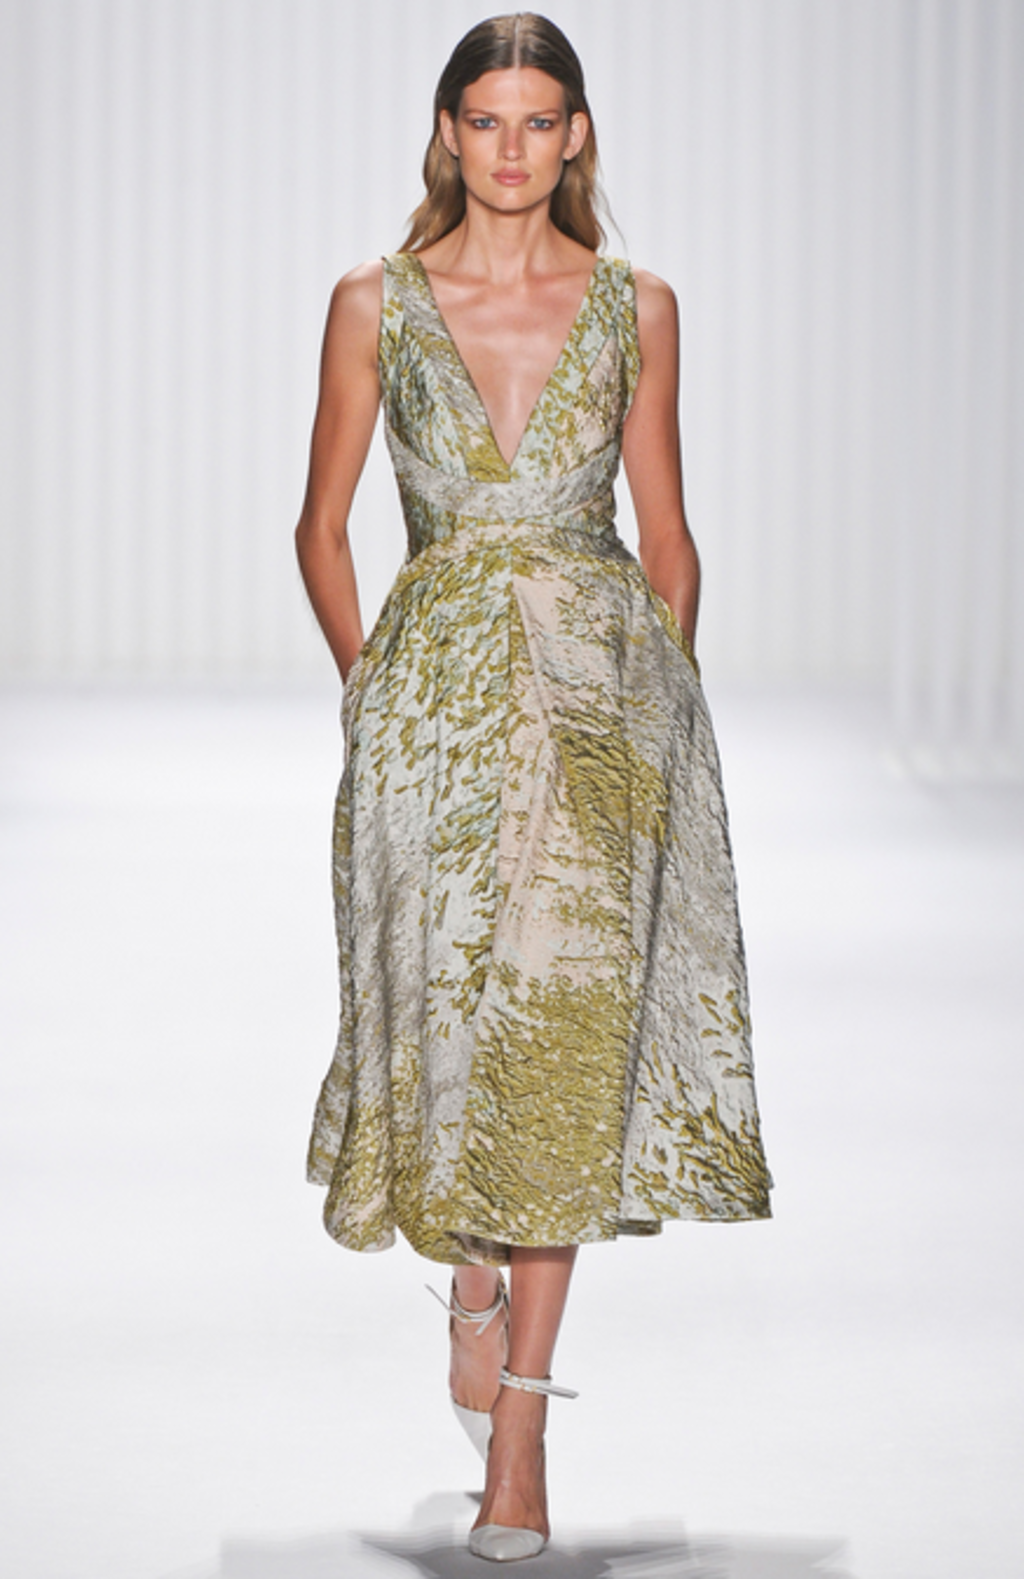 Read-to-wear brocade dress by J Mendel.